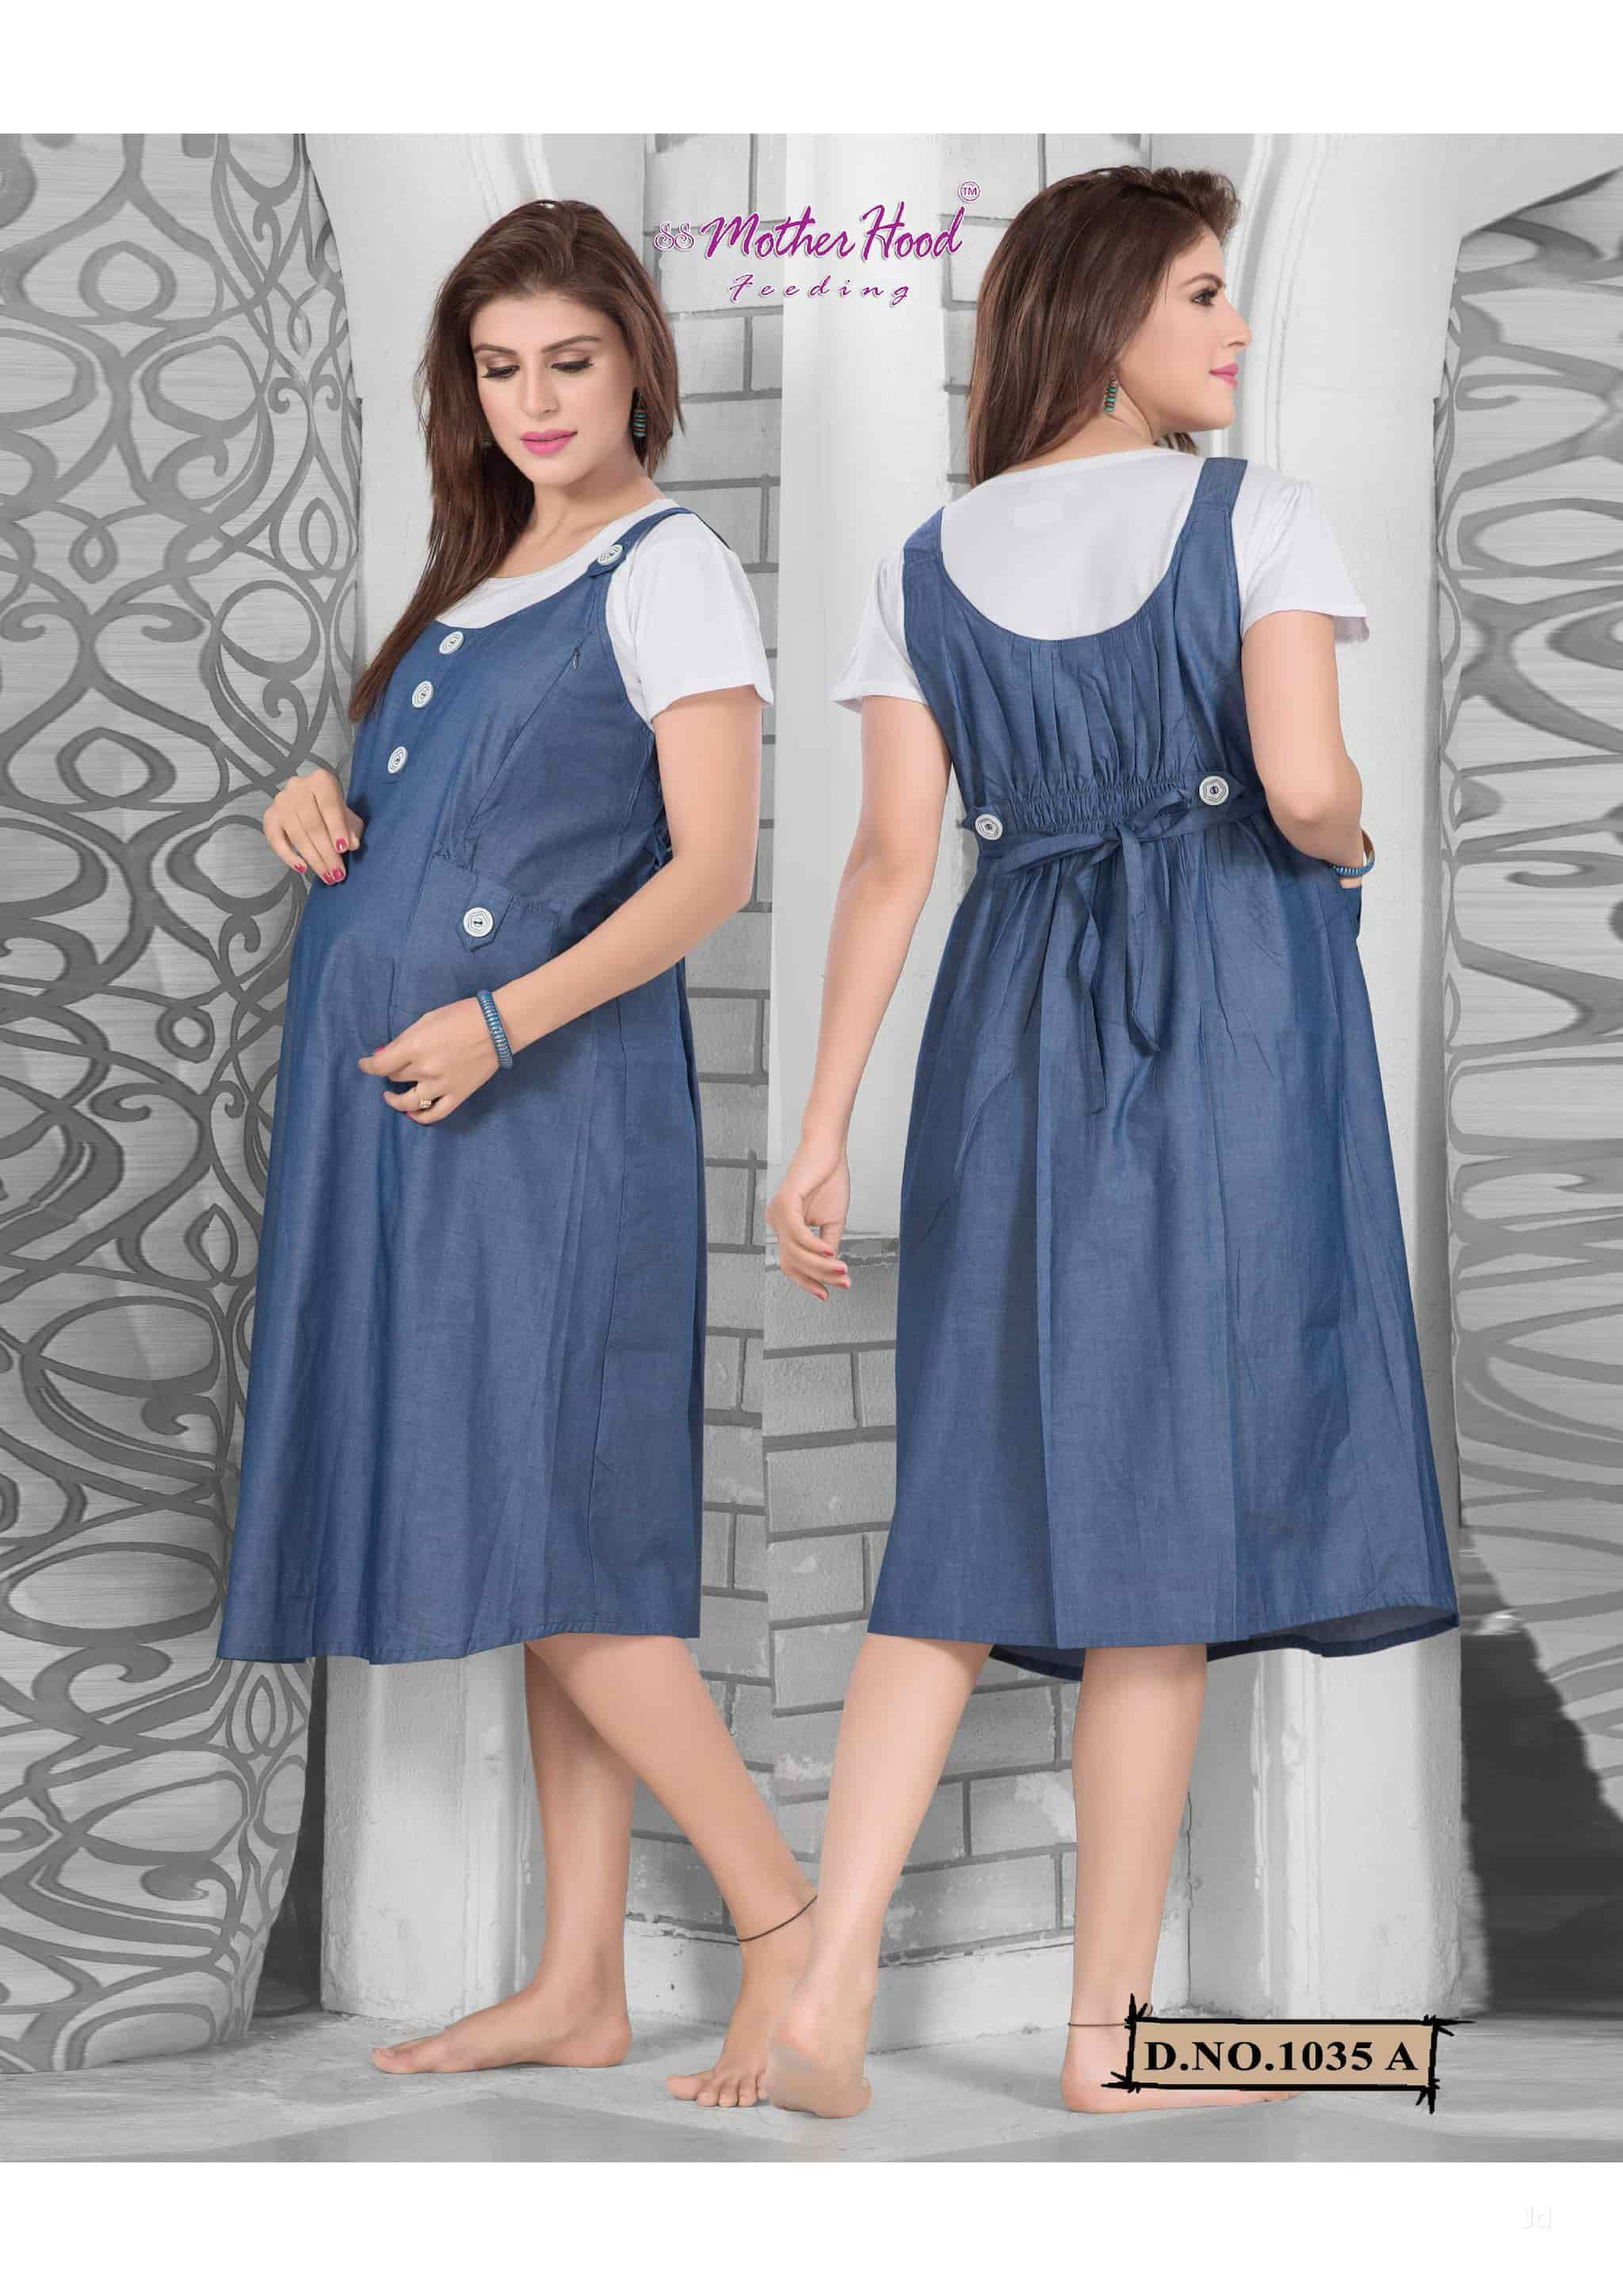 8282eb8980a Maternity Dresses Stores Near Me - Gomes Weine AG